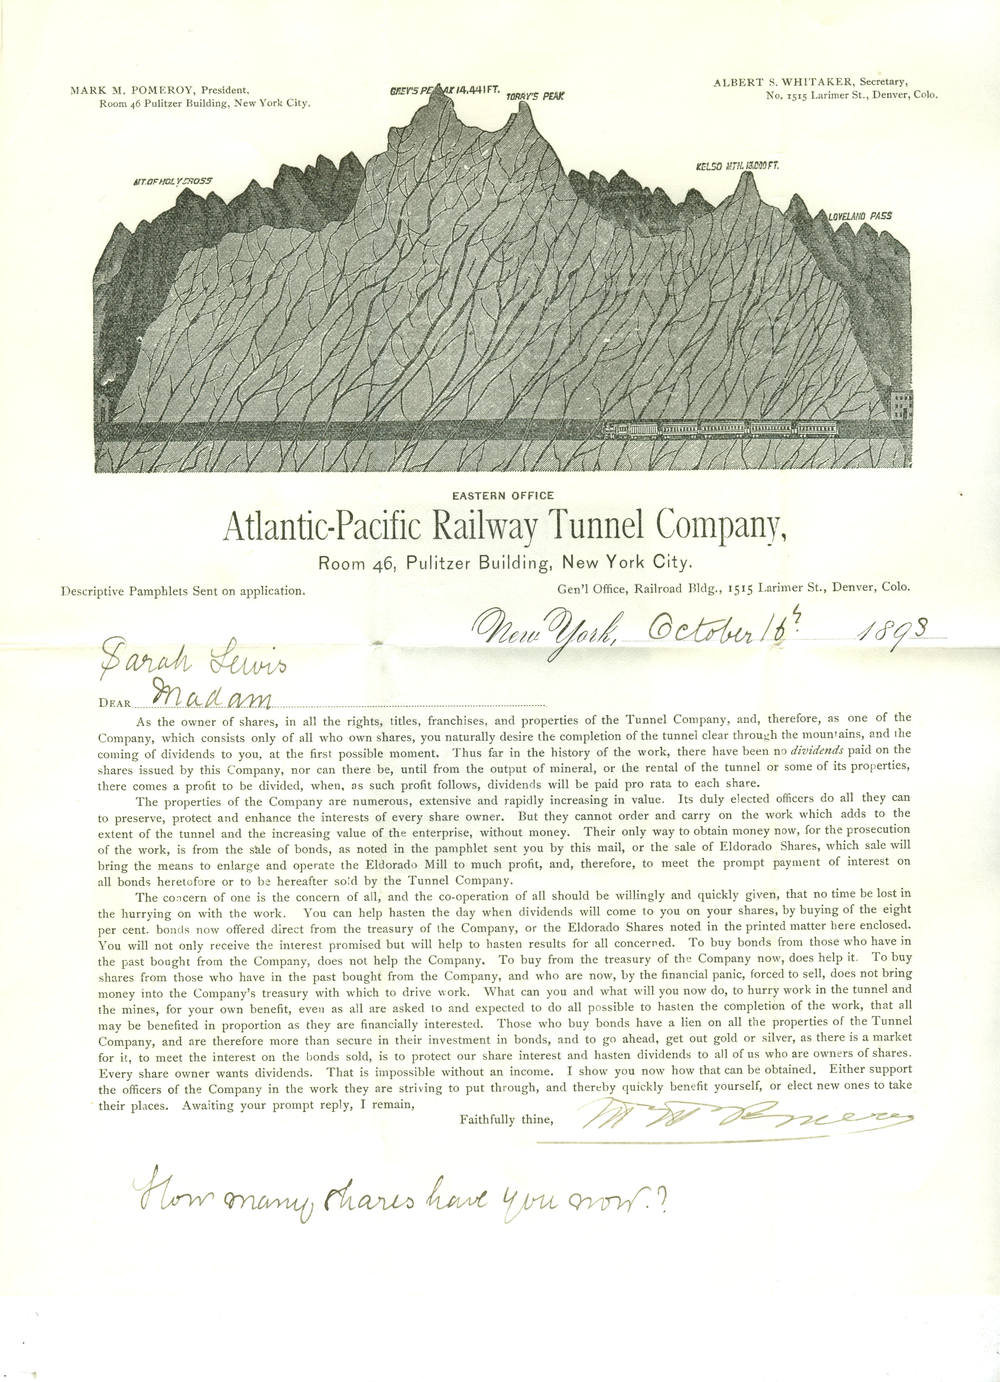 A-P Railroad Tunnel 1893